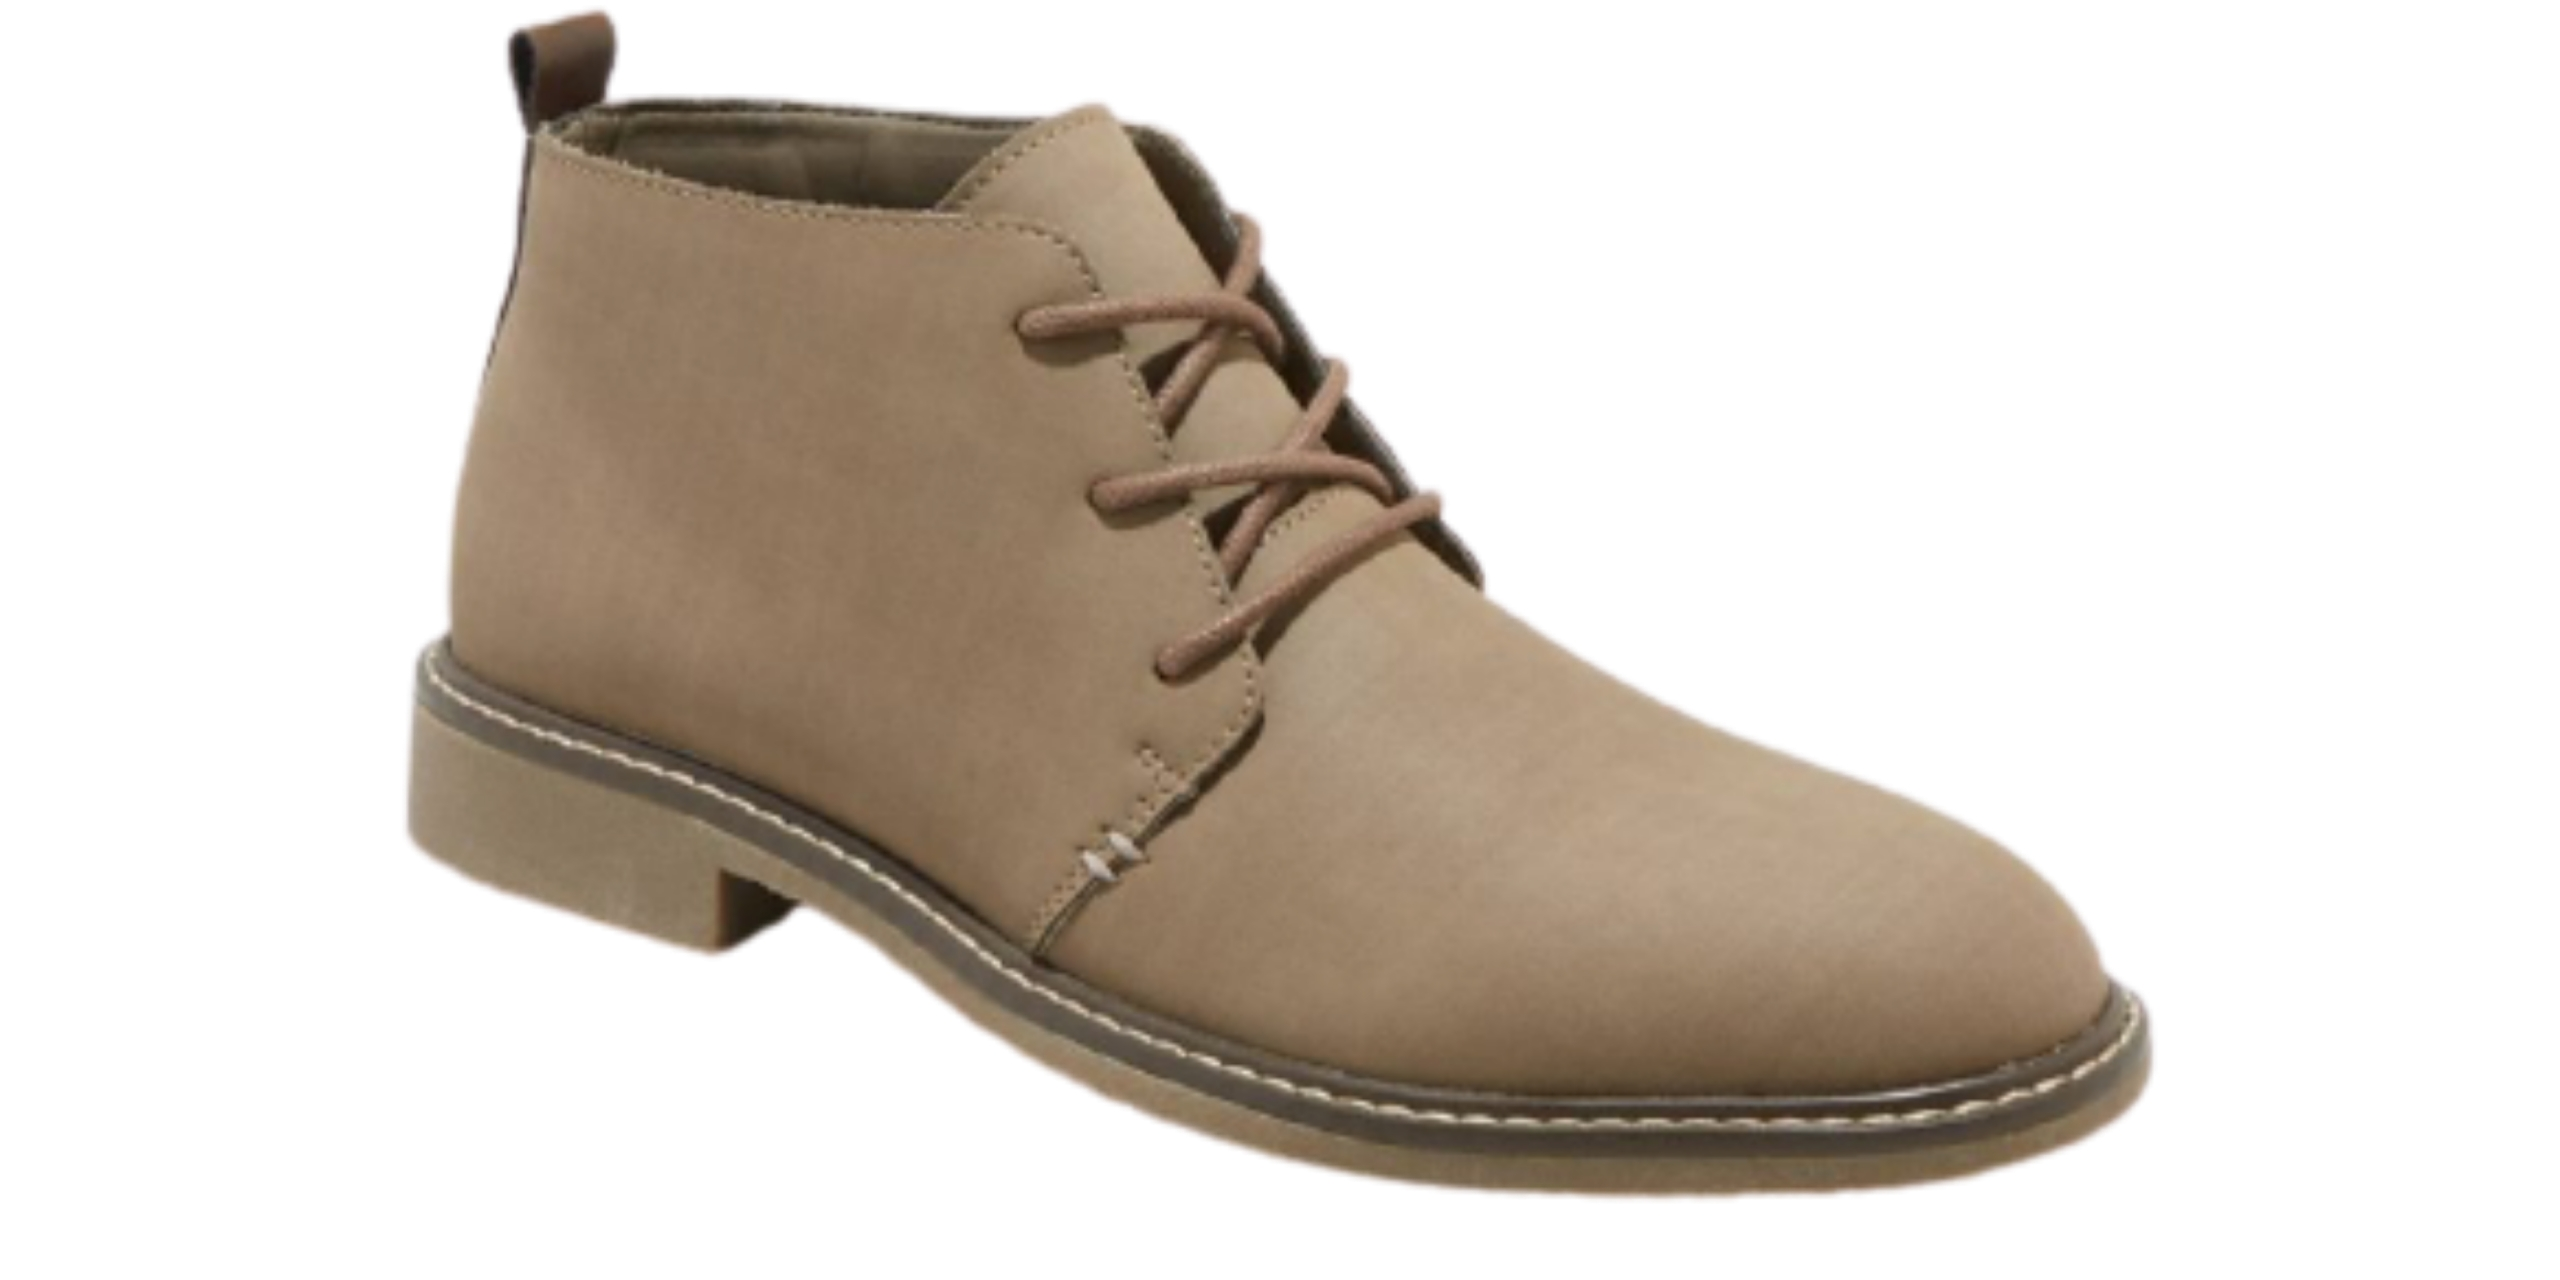 Chukka Shoe — Types of Men's Formal Shoes